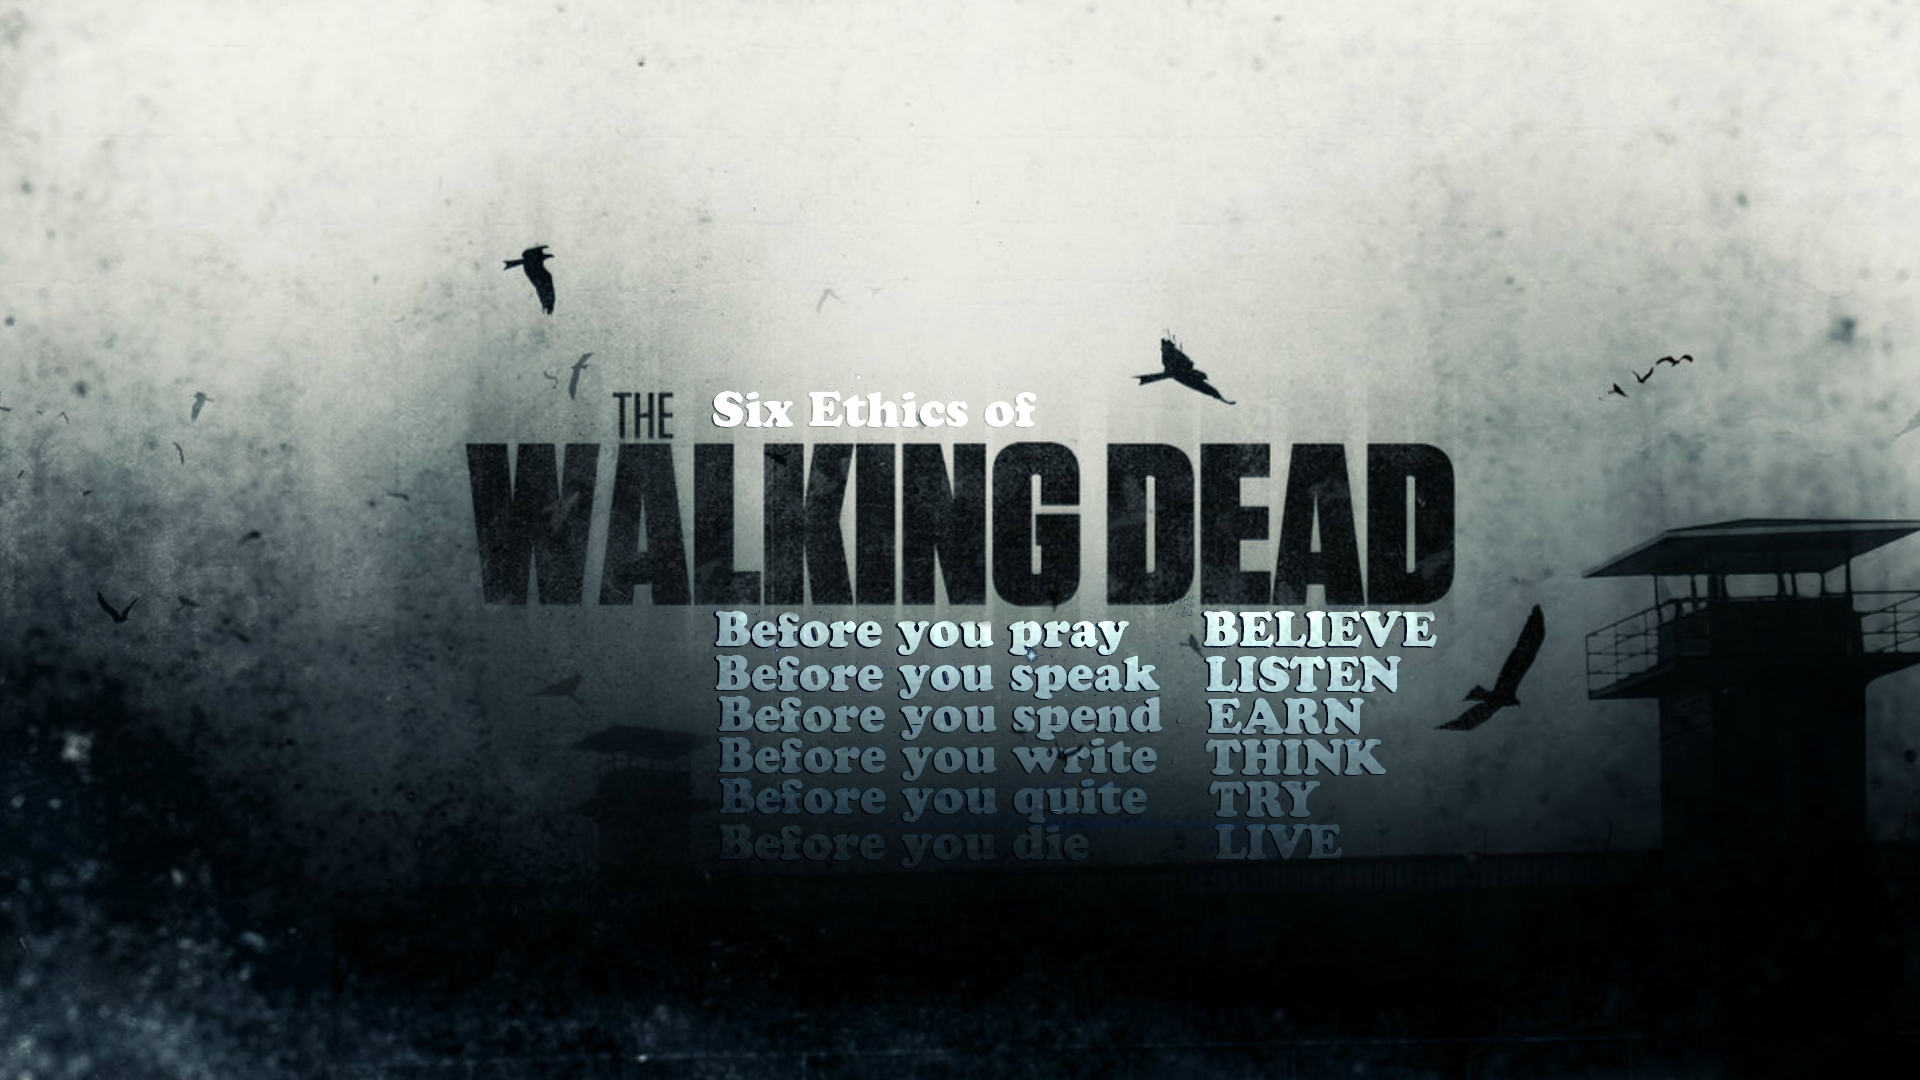 The Walking Dead Wallpapers: The Six Full HD Wallpaper And Background Image